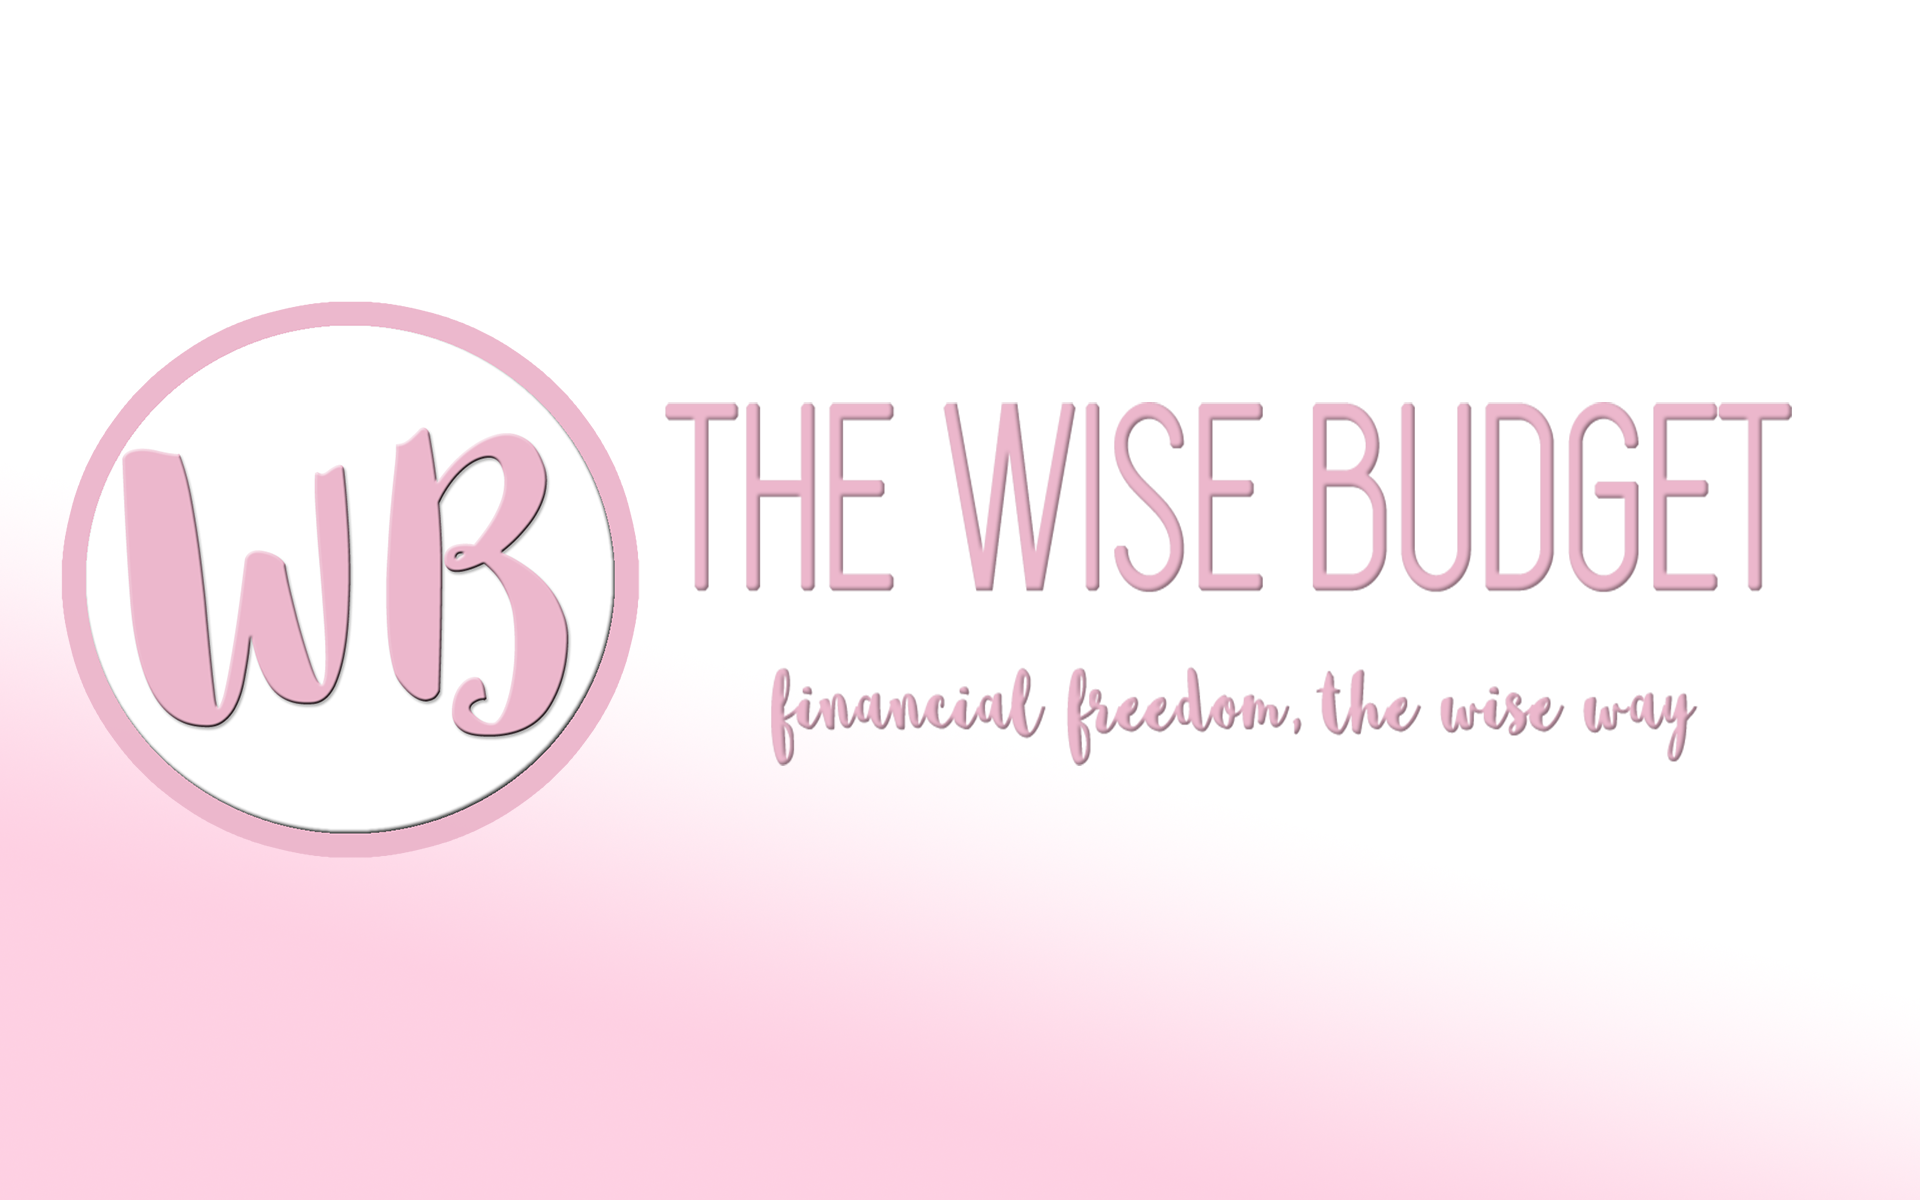 thewisebudget personal finance blog